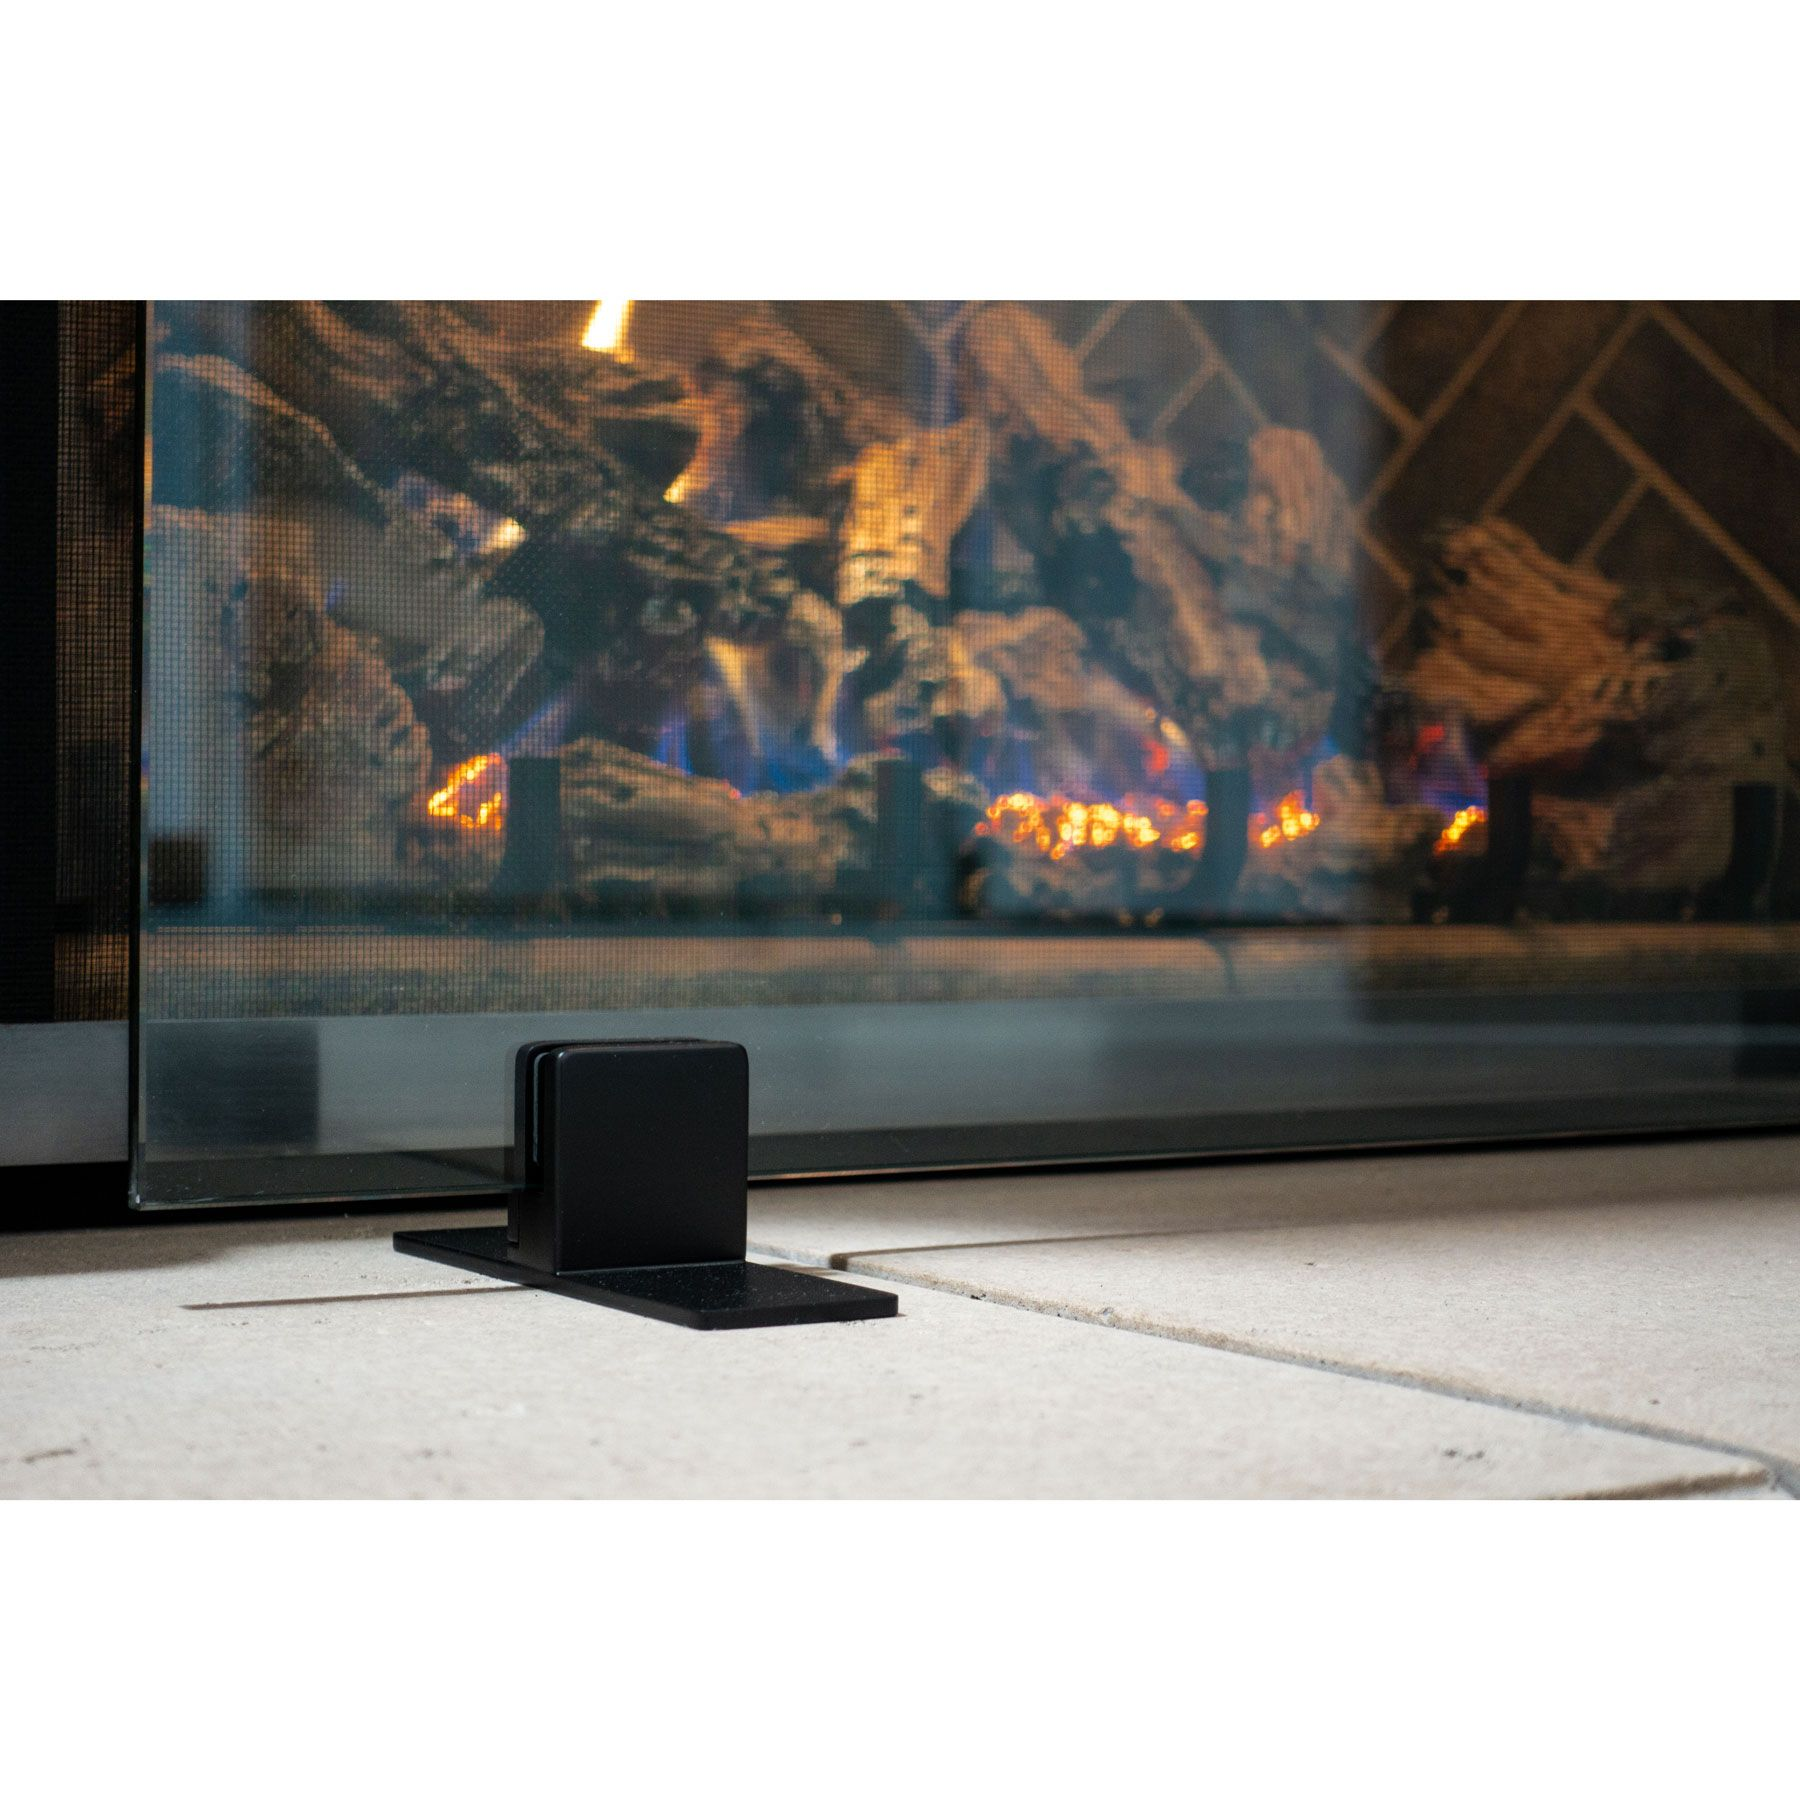 Fireplaces Fire Pits Grills Bbqs Torches And Fire Features Glass Fireplace Screen Glass Fireplace Outdoor Fireplace Glass fireplace screen free standing